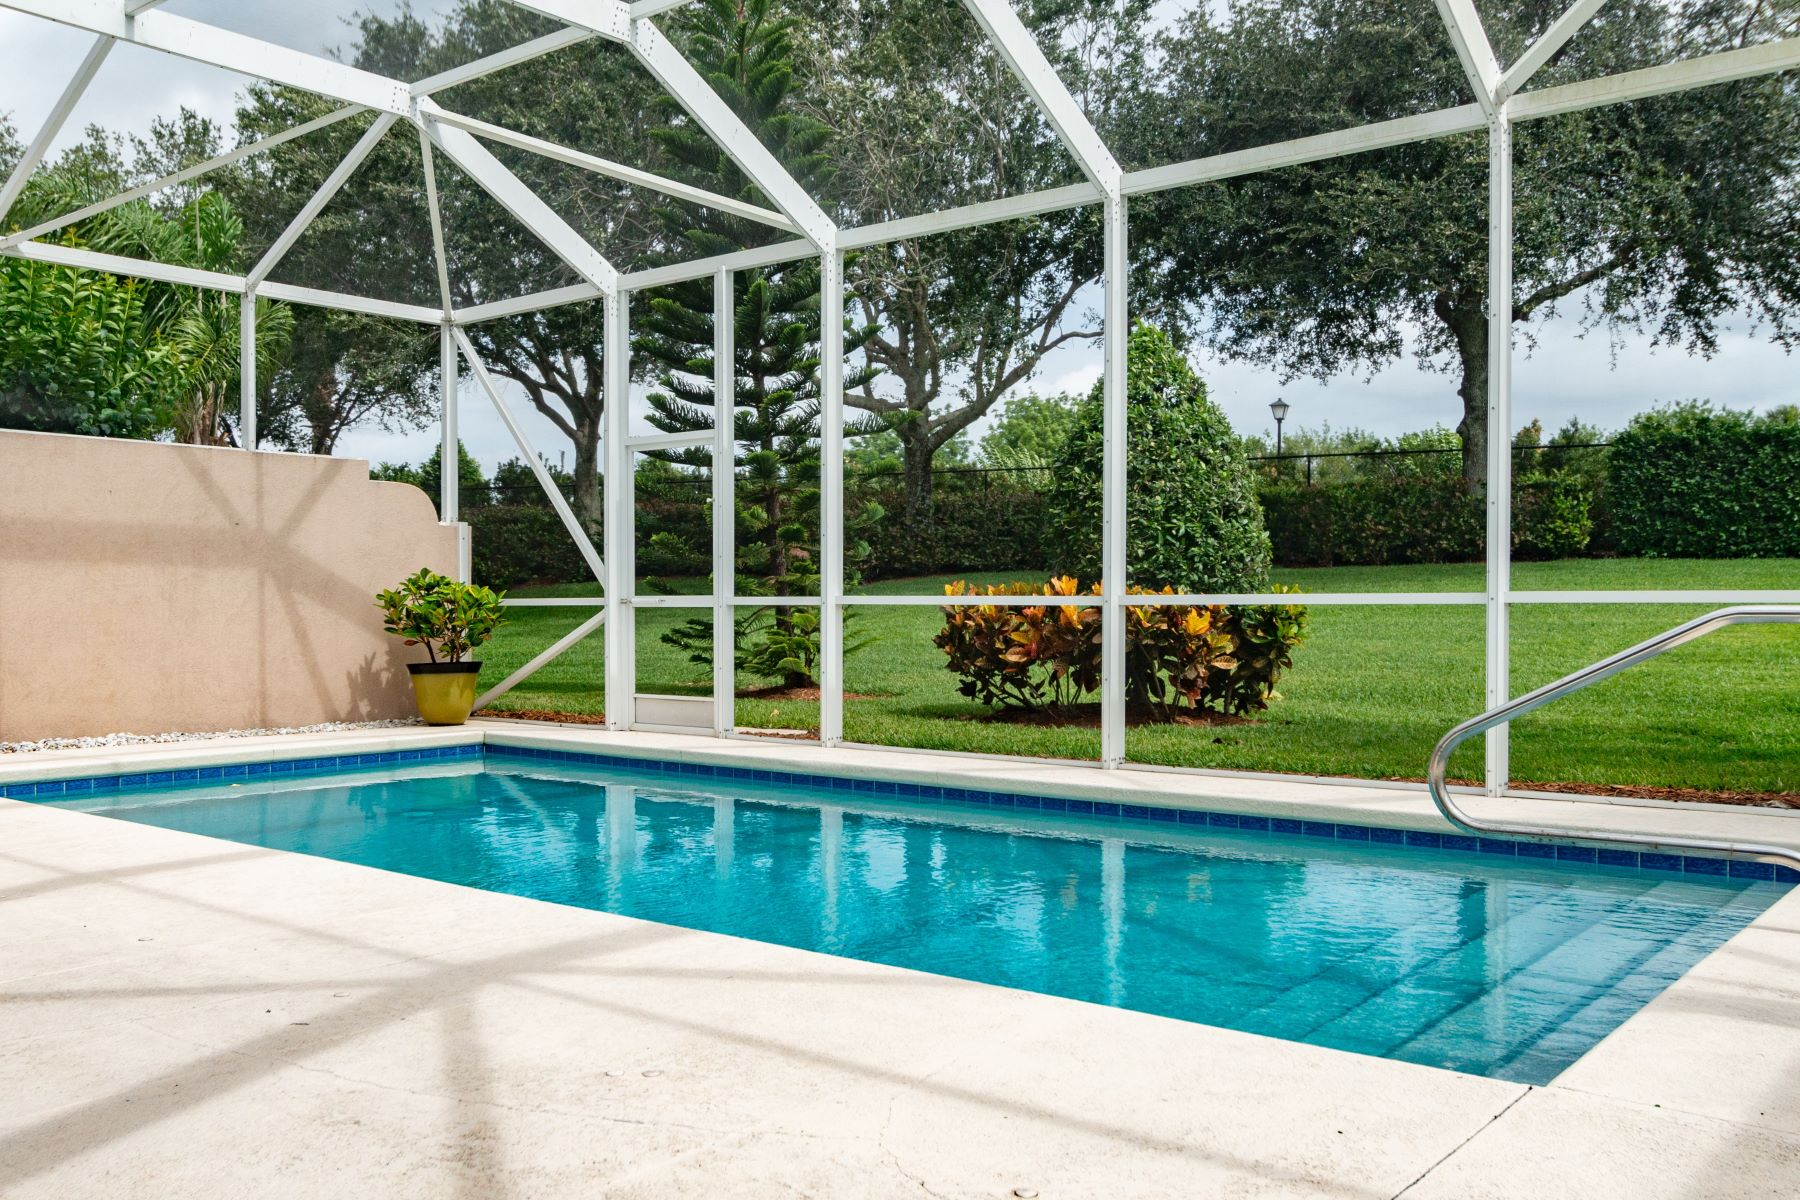 Property for Sale at 5227 Eleuthra Circle, Vero Beach, FL 5227 Eleuthra Circle Vero Beach, Florida 32967 United States